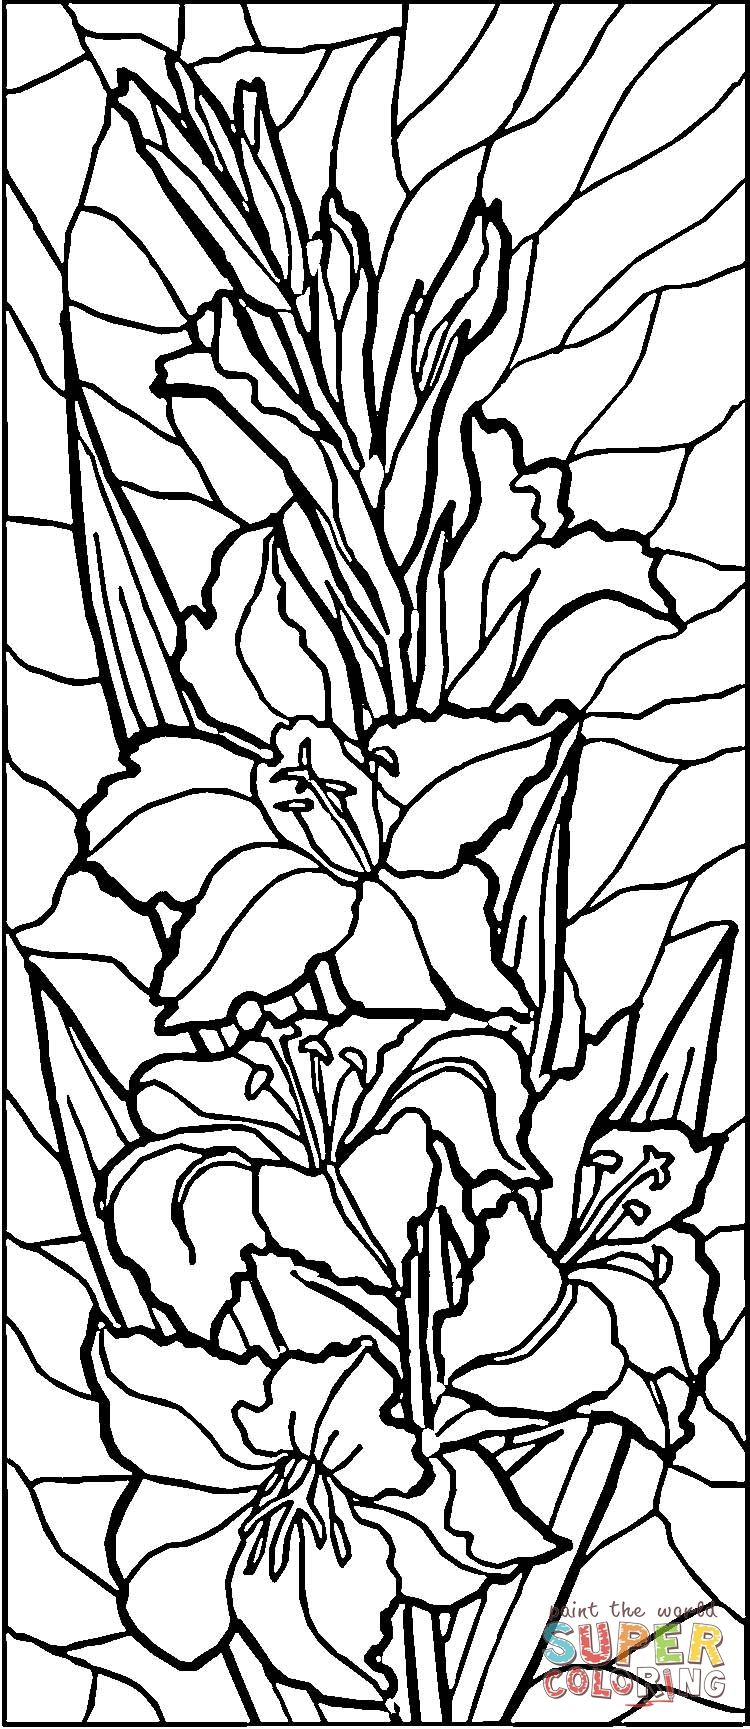 lily stained glass window google search templates pinterest